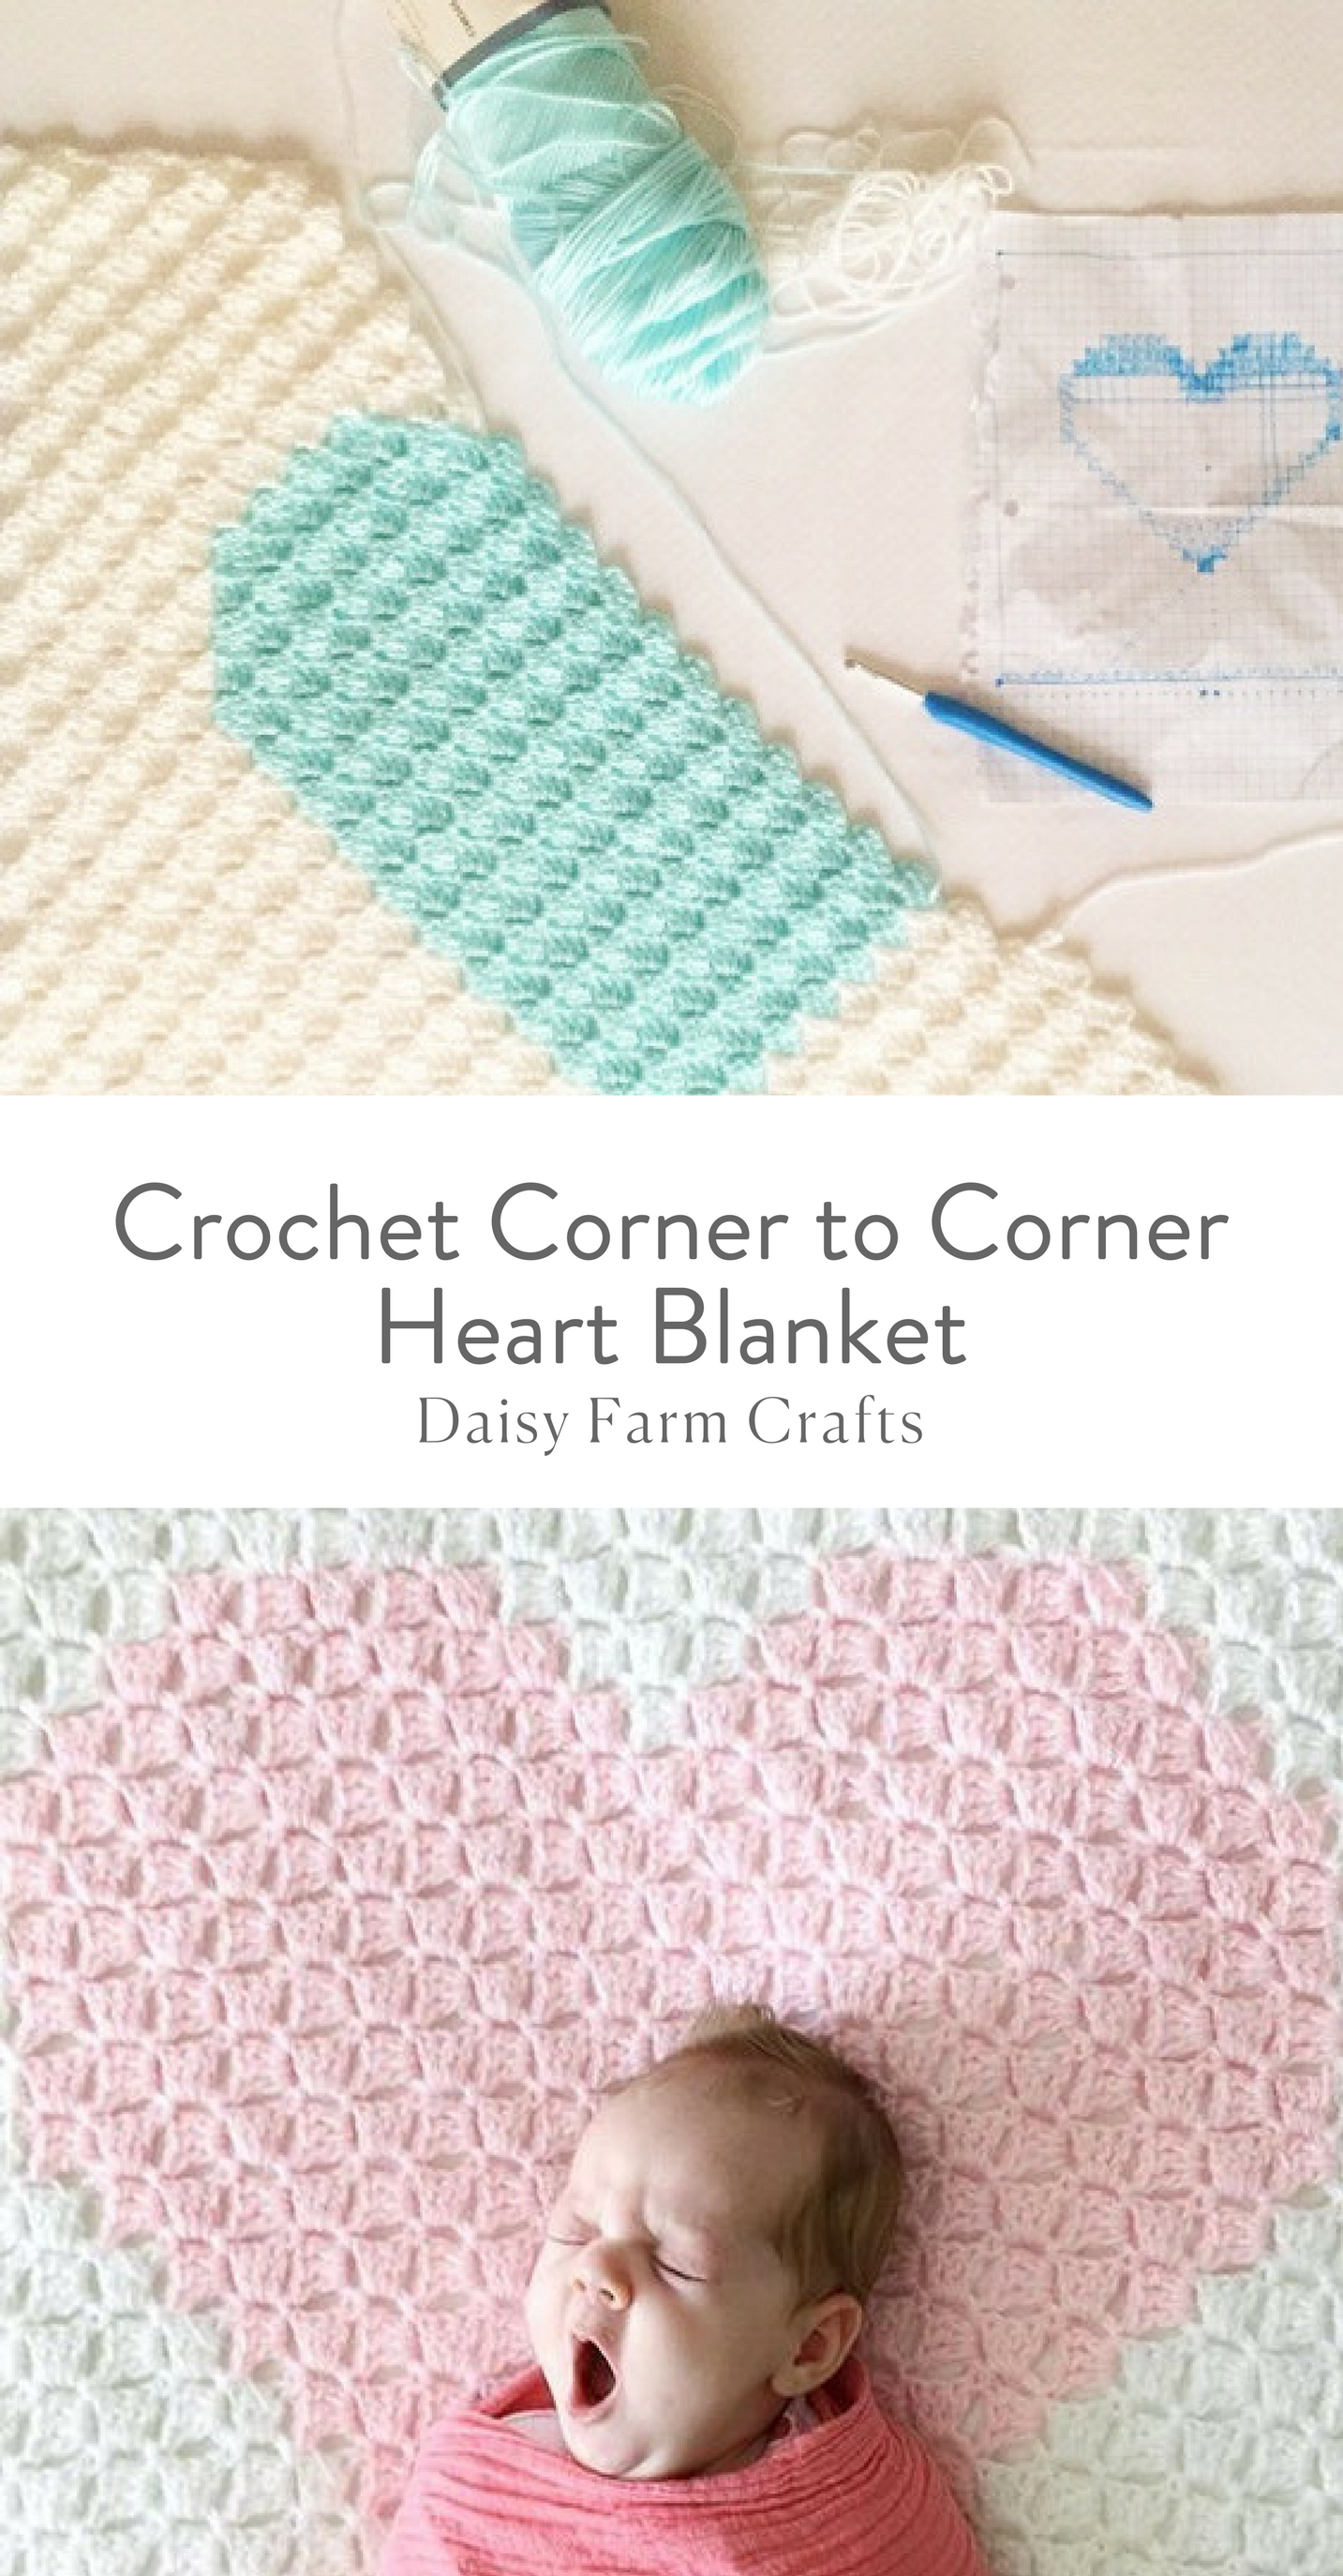 Free Pattern - Crochet Corner to Corner Heart Blanket | Yarn ...